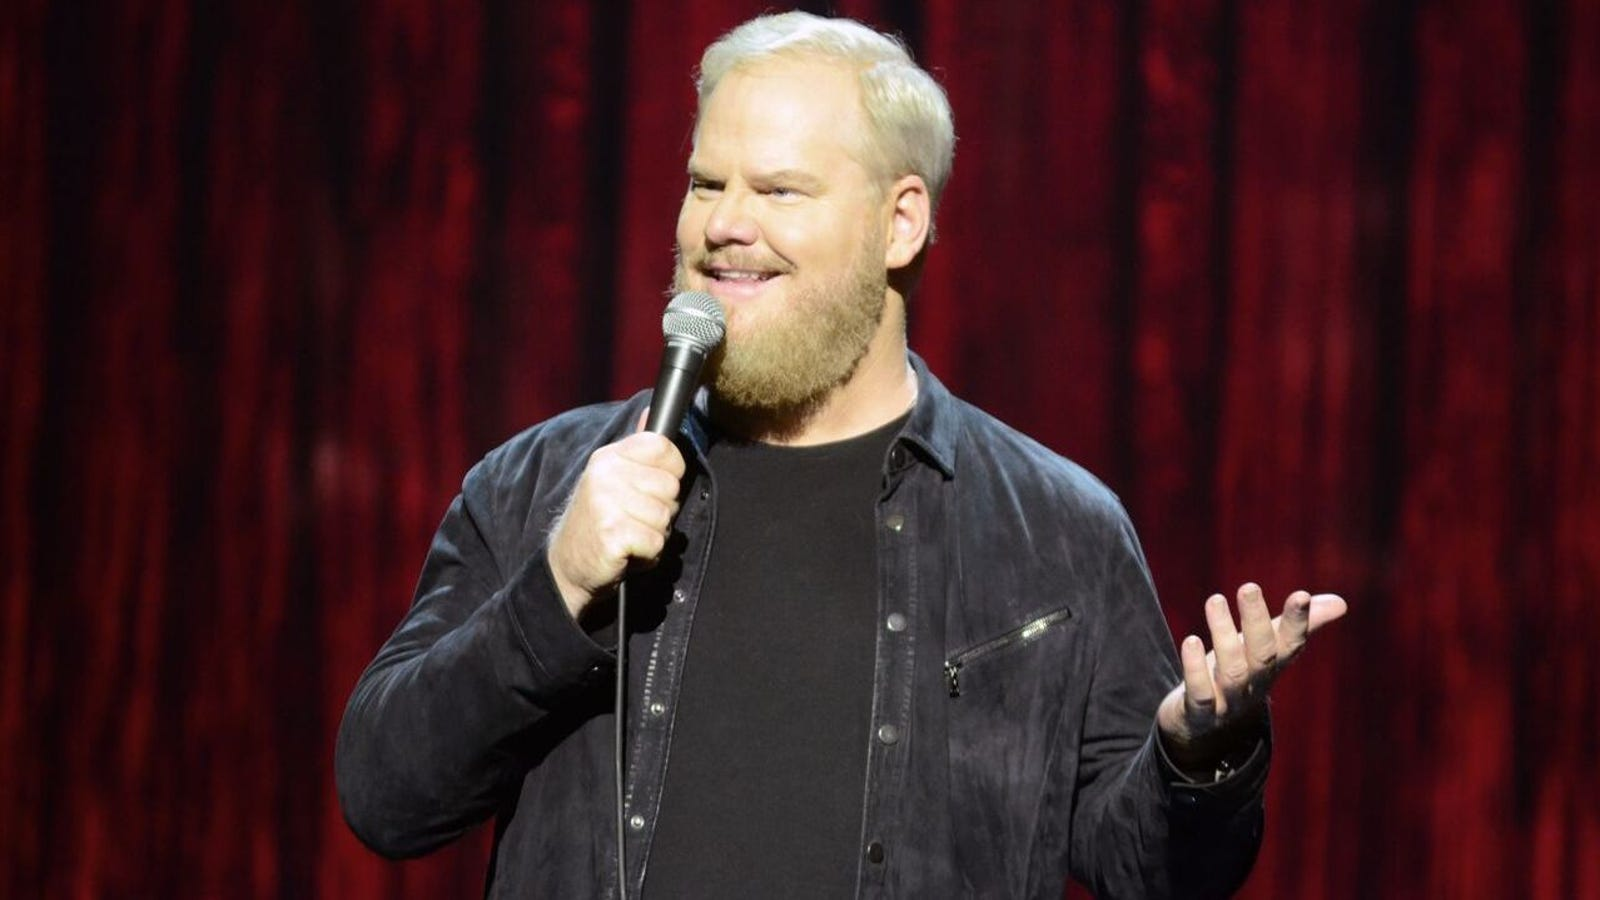 Jim Gaffigan turns near-tragedy into reassuring comedy in Noble Ape